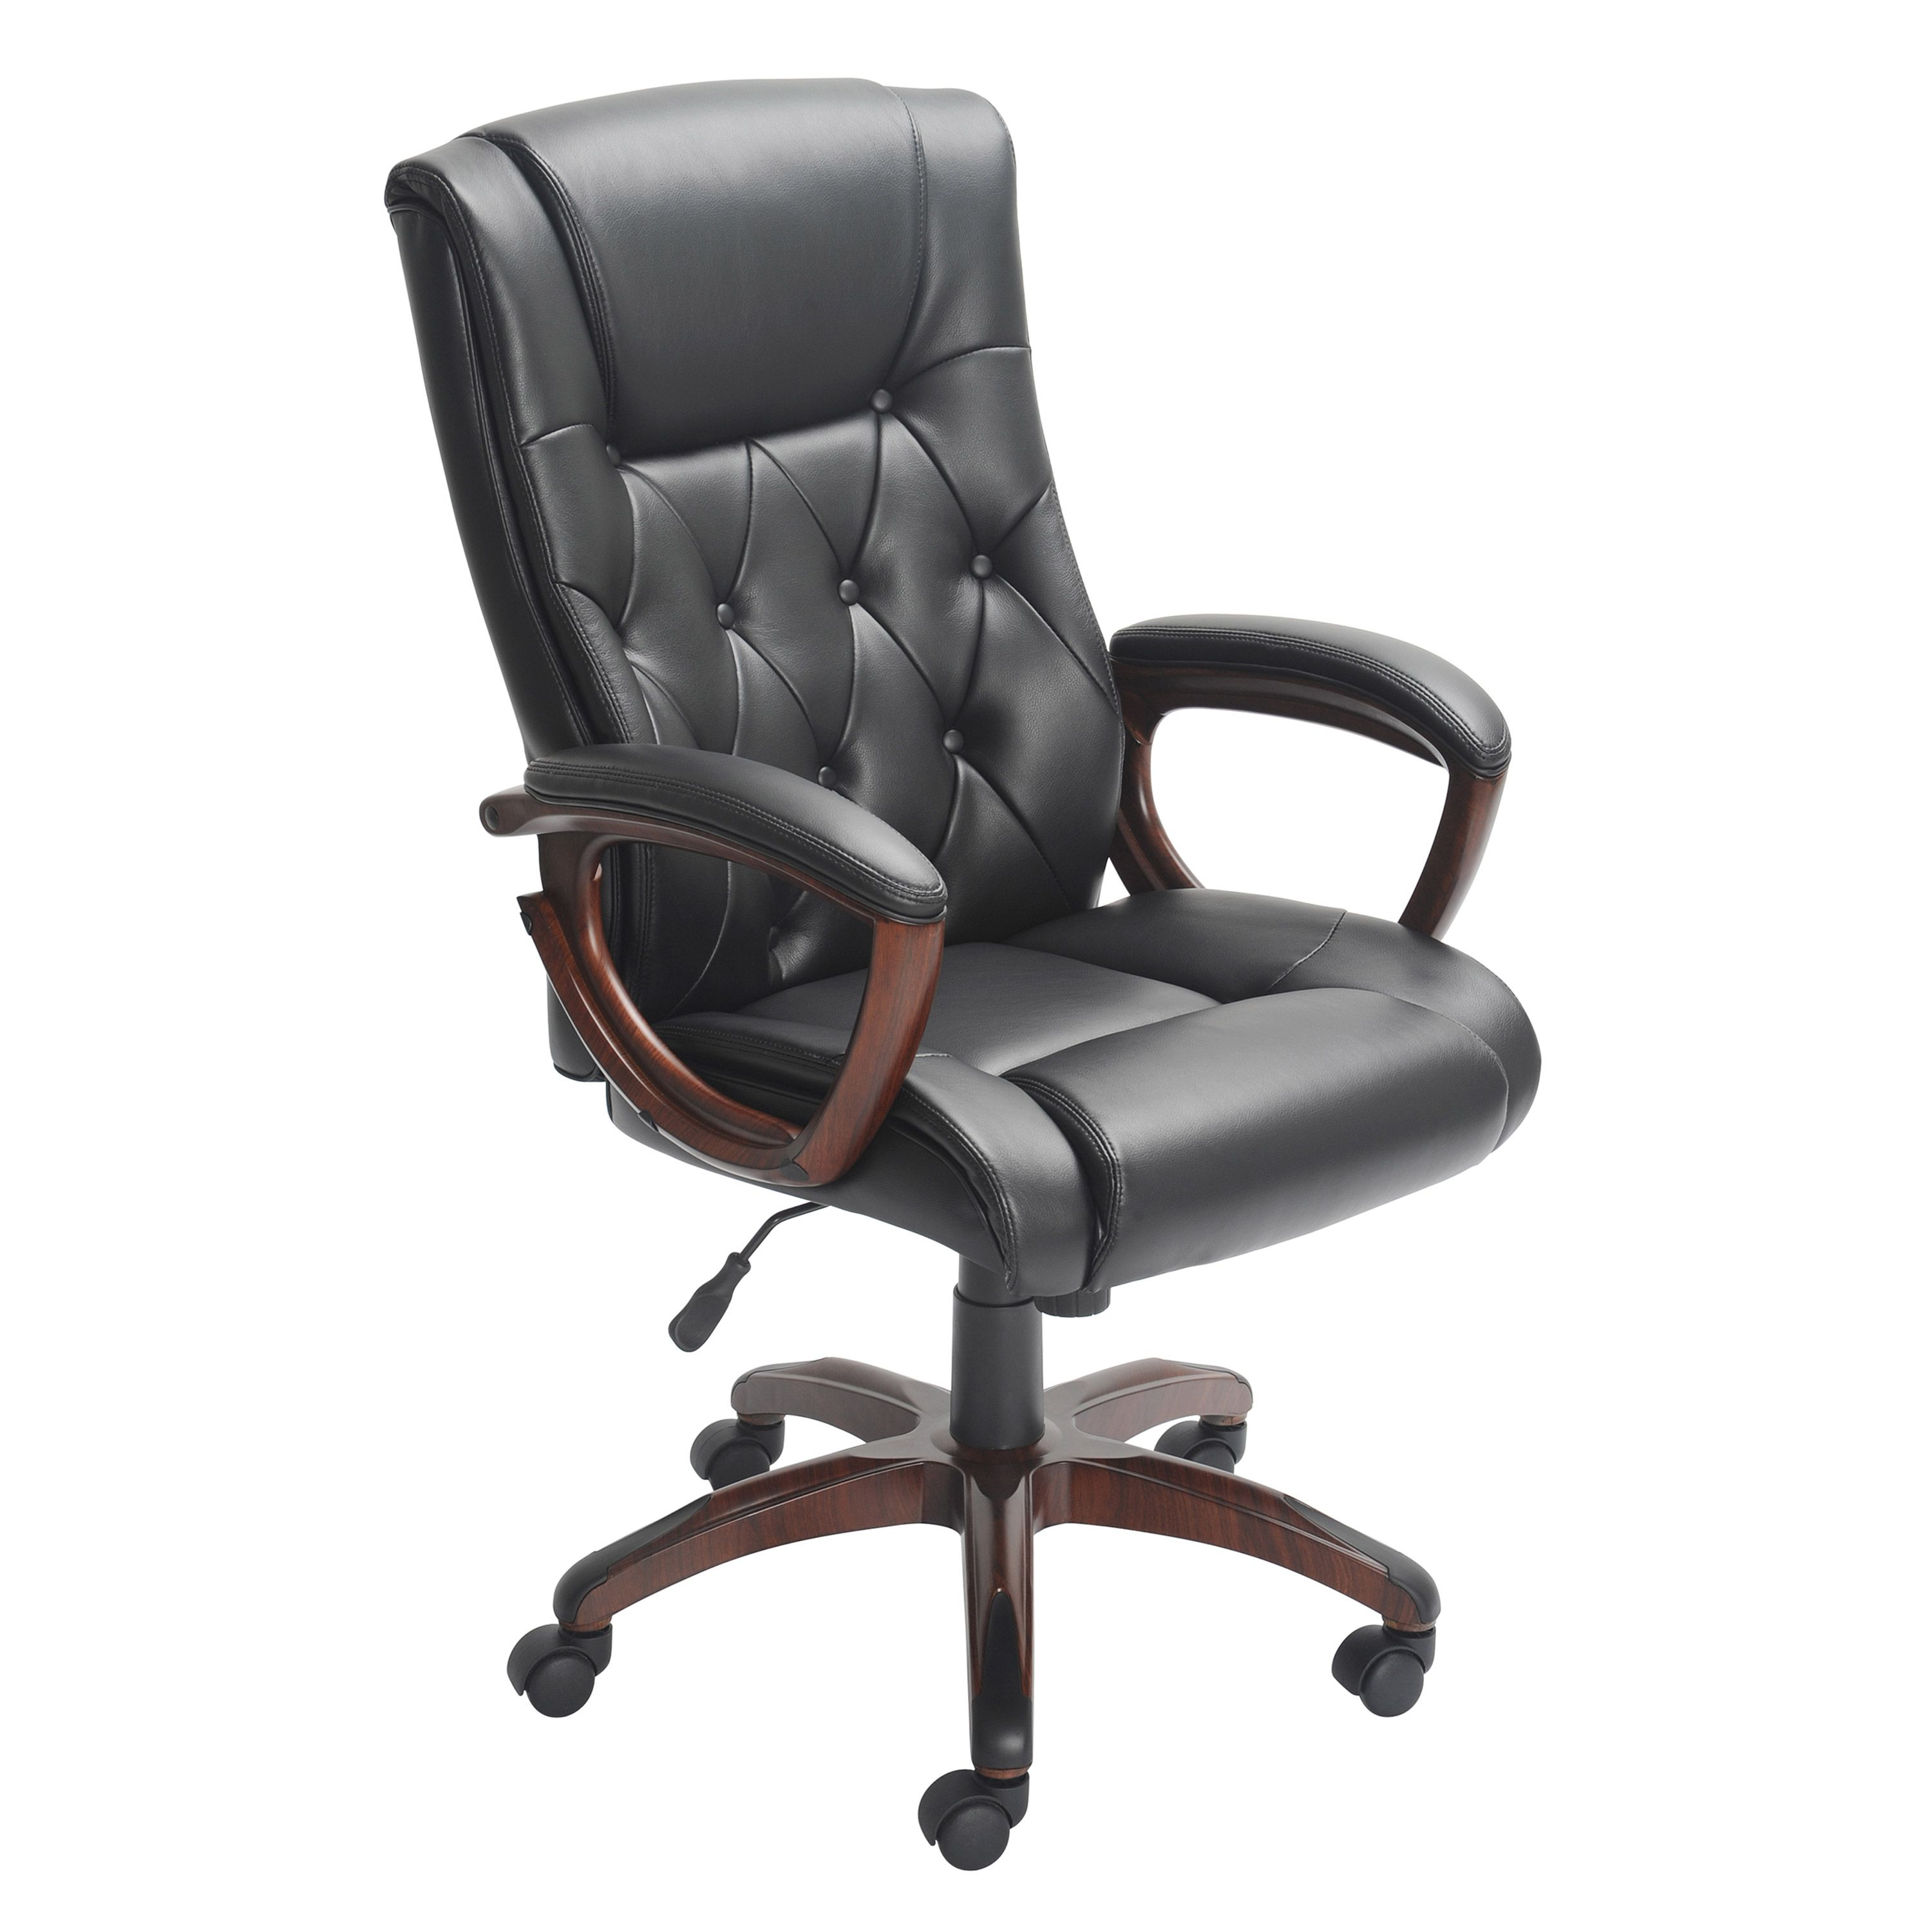 c7f82ea009936b44a1015883d1cbf0fe - Better Homes And Gardens Bonded Leather Office Chair